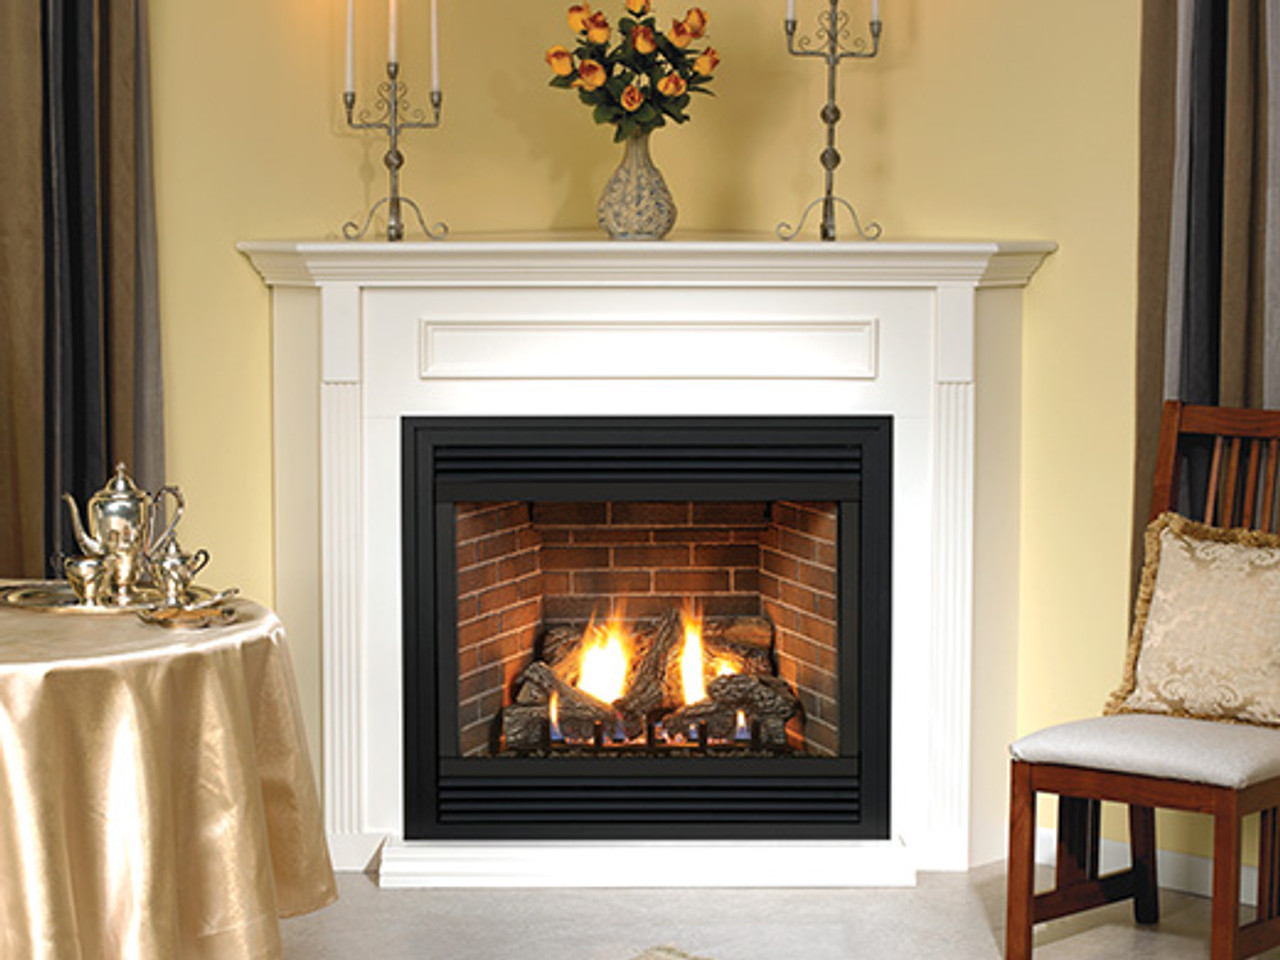 """Empire Tahoe Direct-Vent Fireplace Premium 48"""" - Multi-Function Control (includes Variable Remote to control flame and blower, battery backup)"""